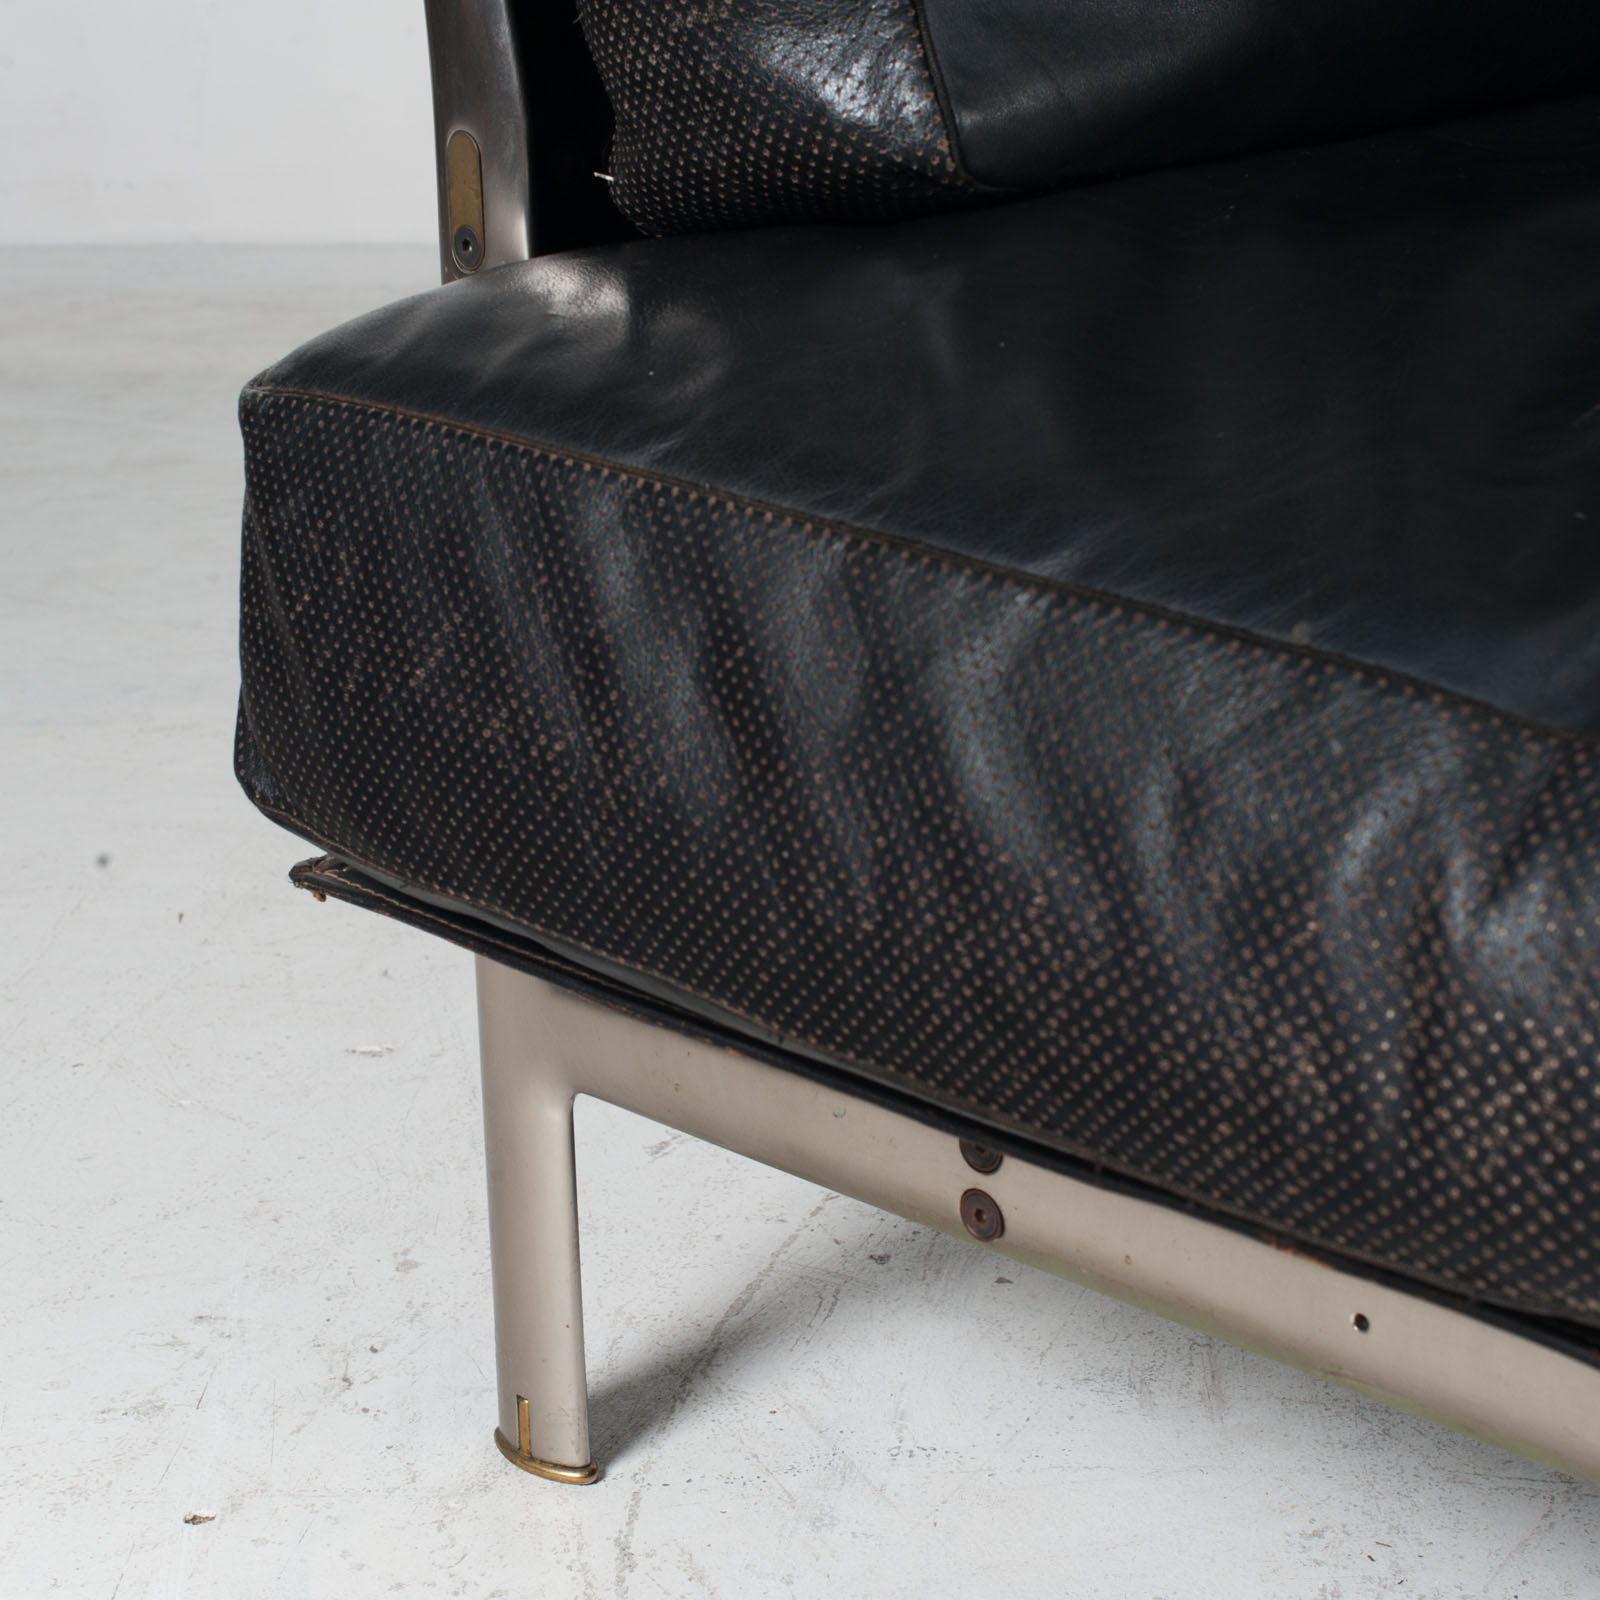 Model Diesis Chaise Lounge For B&b Italia By Antonio Citterio In Black Leather 1970s Italy 08